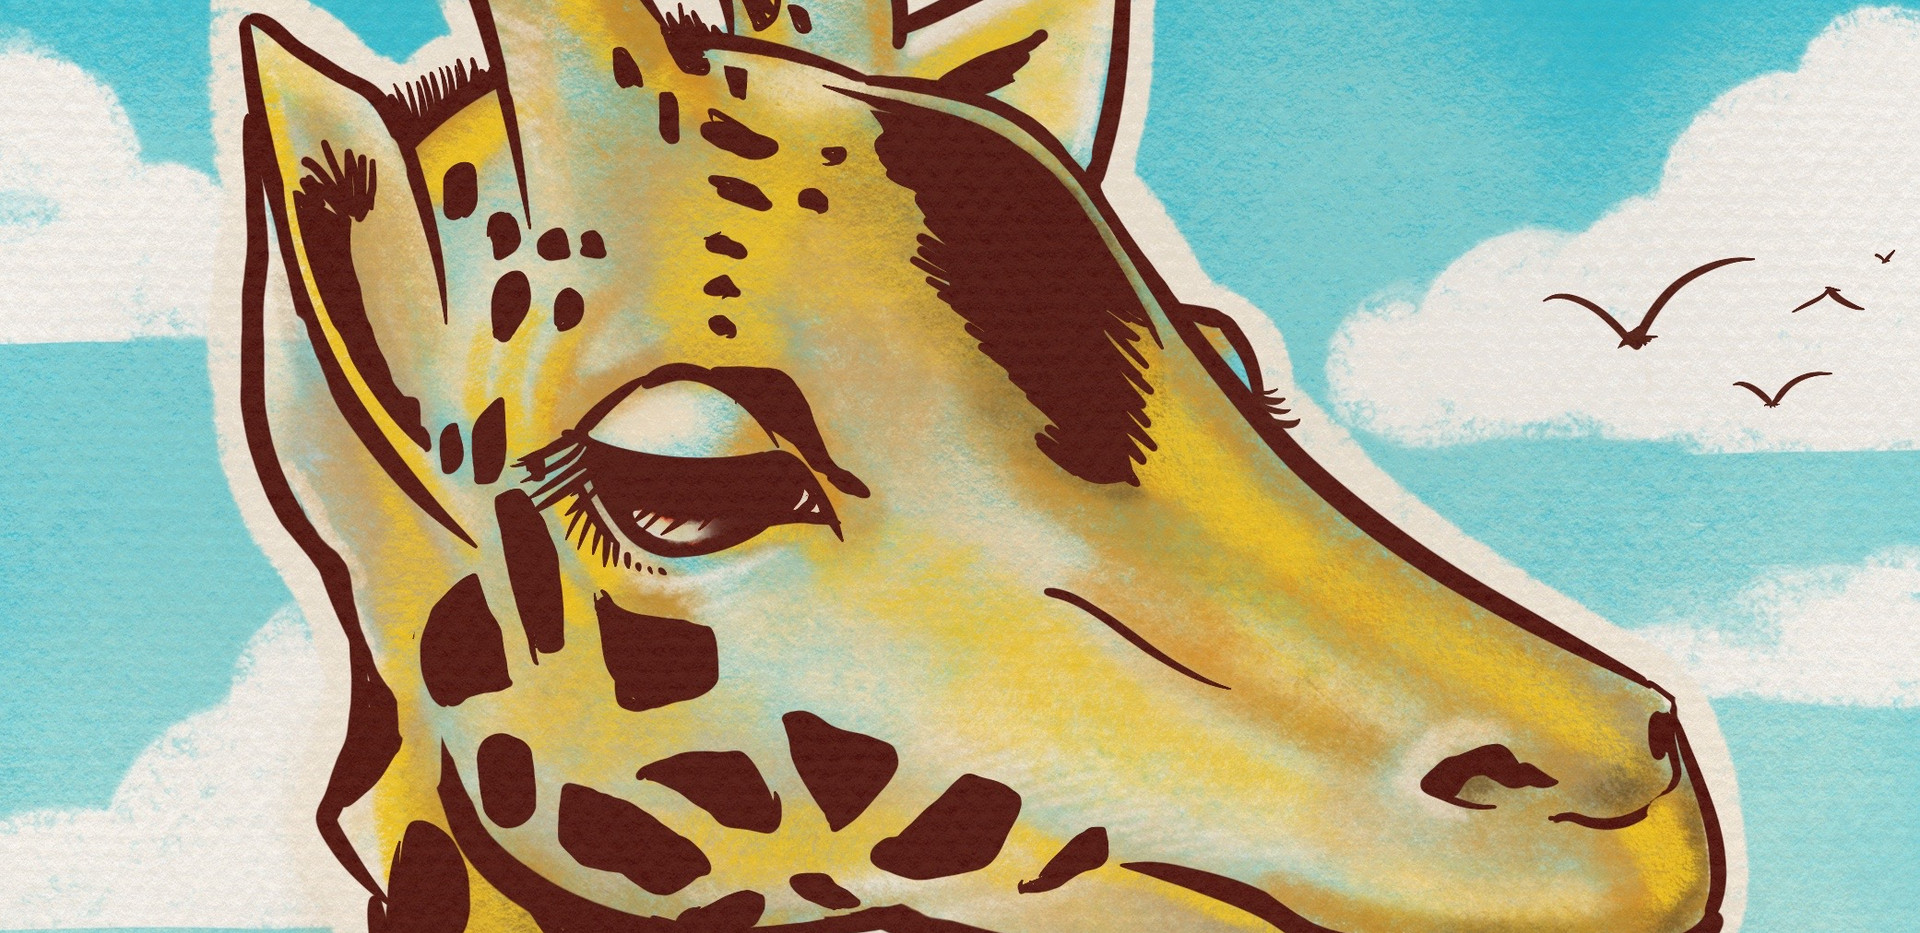 Joseph Grice Giraffe Digital Illustration